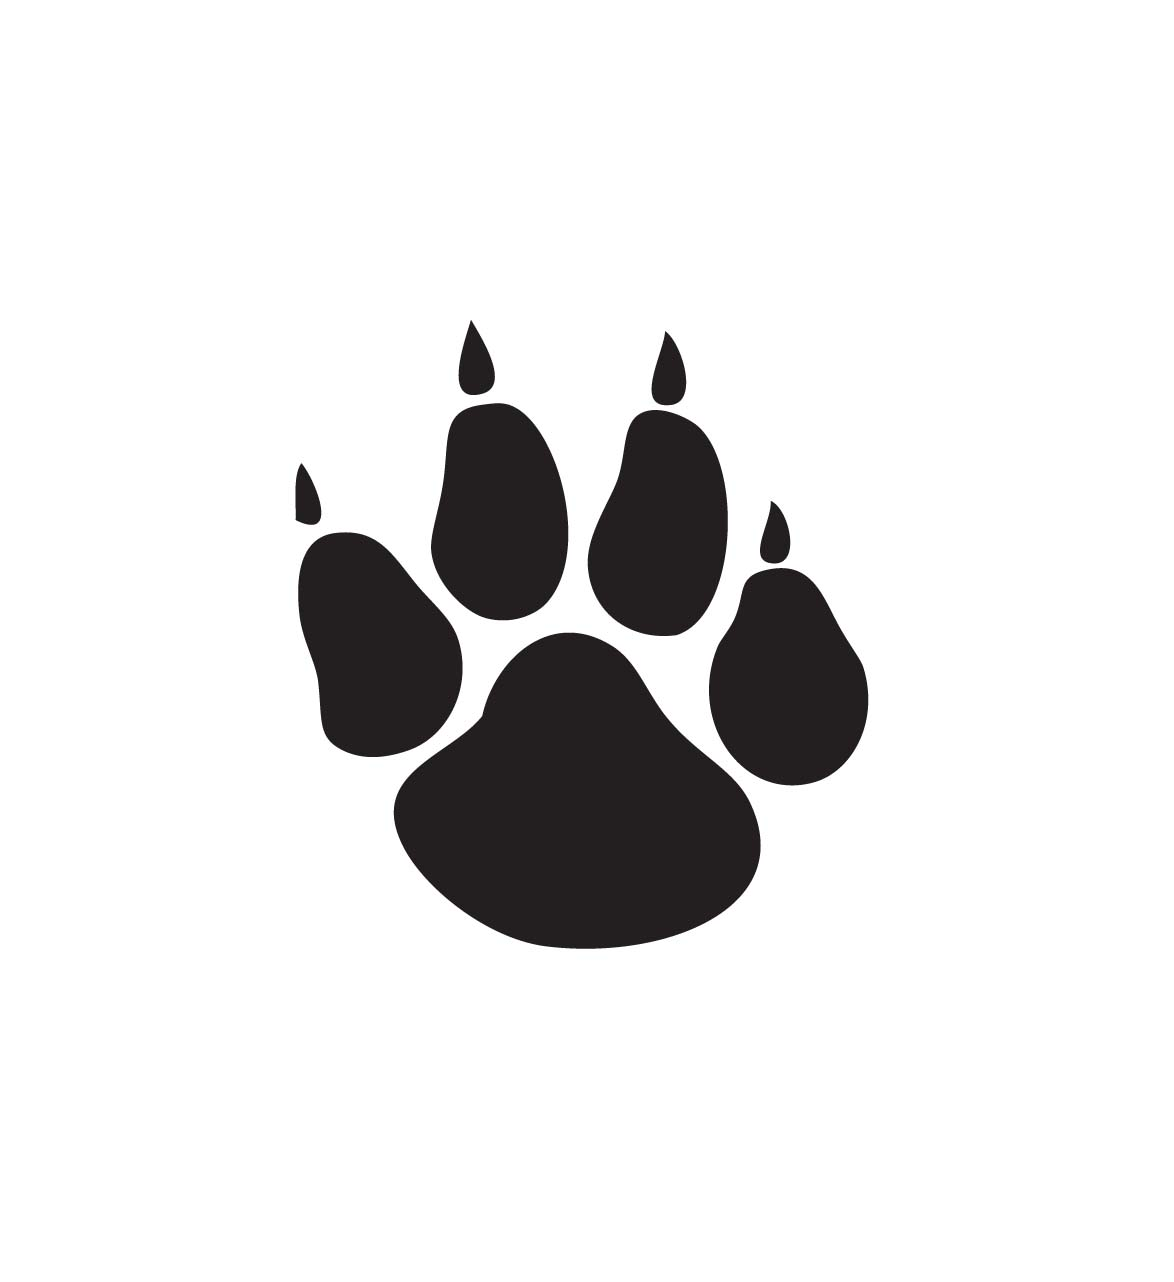 1174x1282 Dog Paw Gallery For Cougar Paw Print Clip Art Free Image